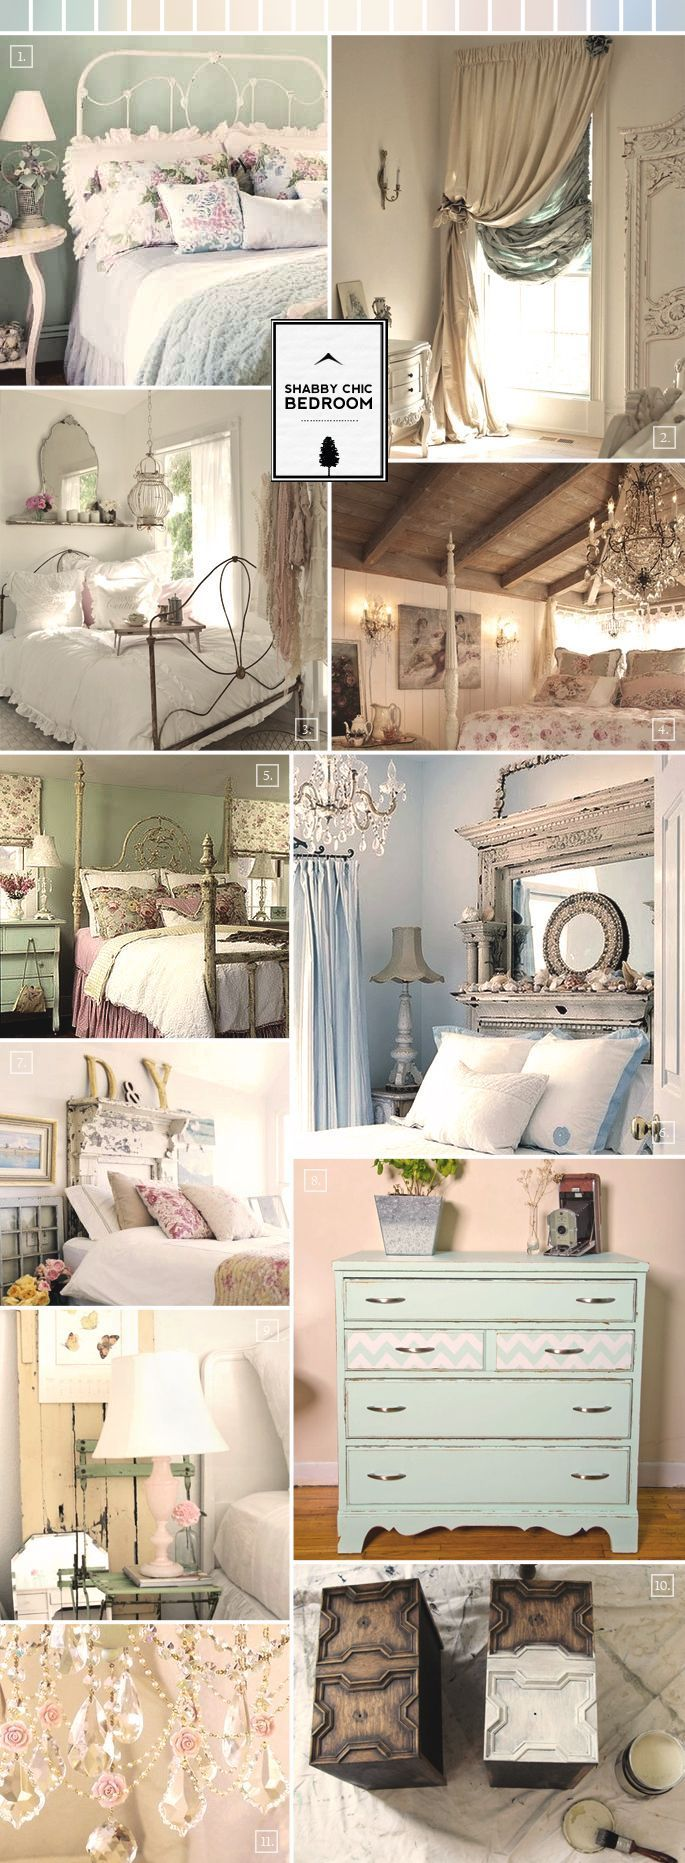 Shabby Chic Bedroom Decorating 17 Best Images About Shabby Chic Bedrooms On Pinterest Shabby